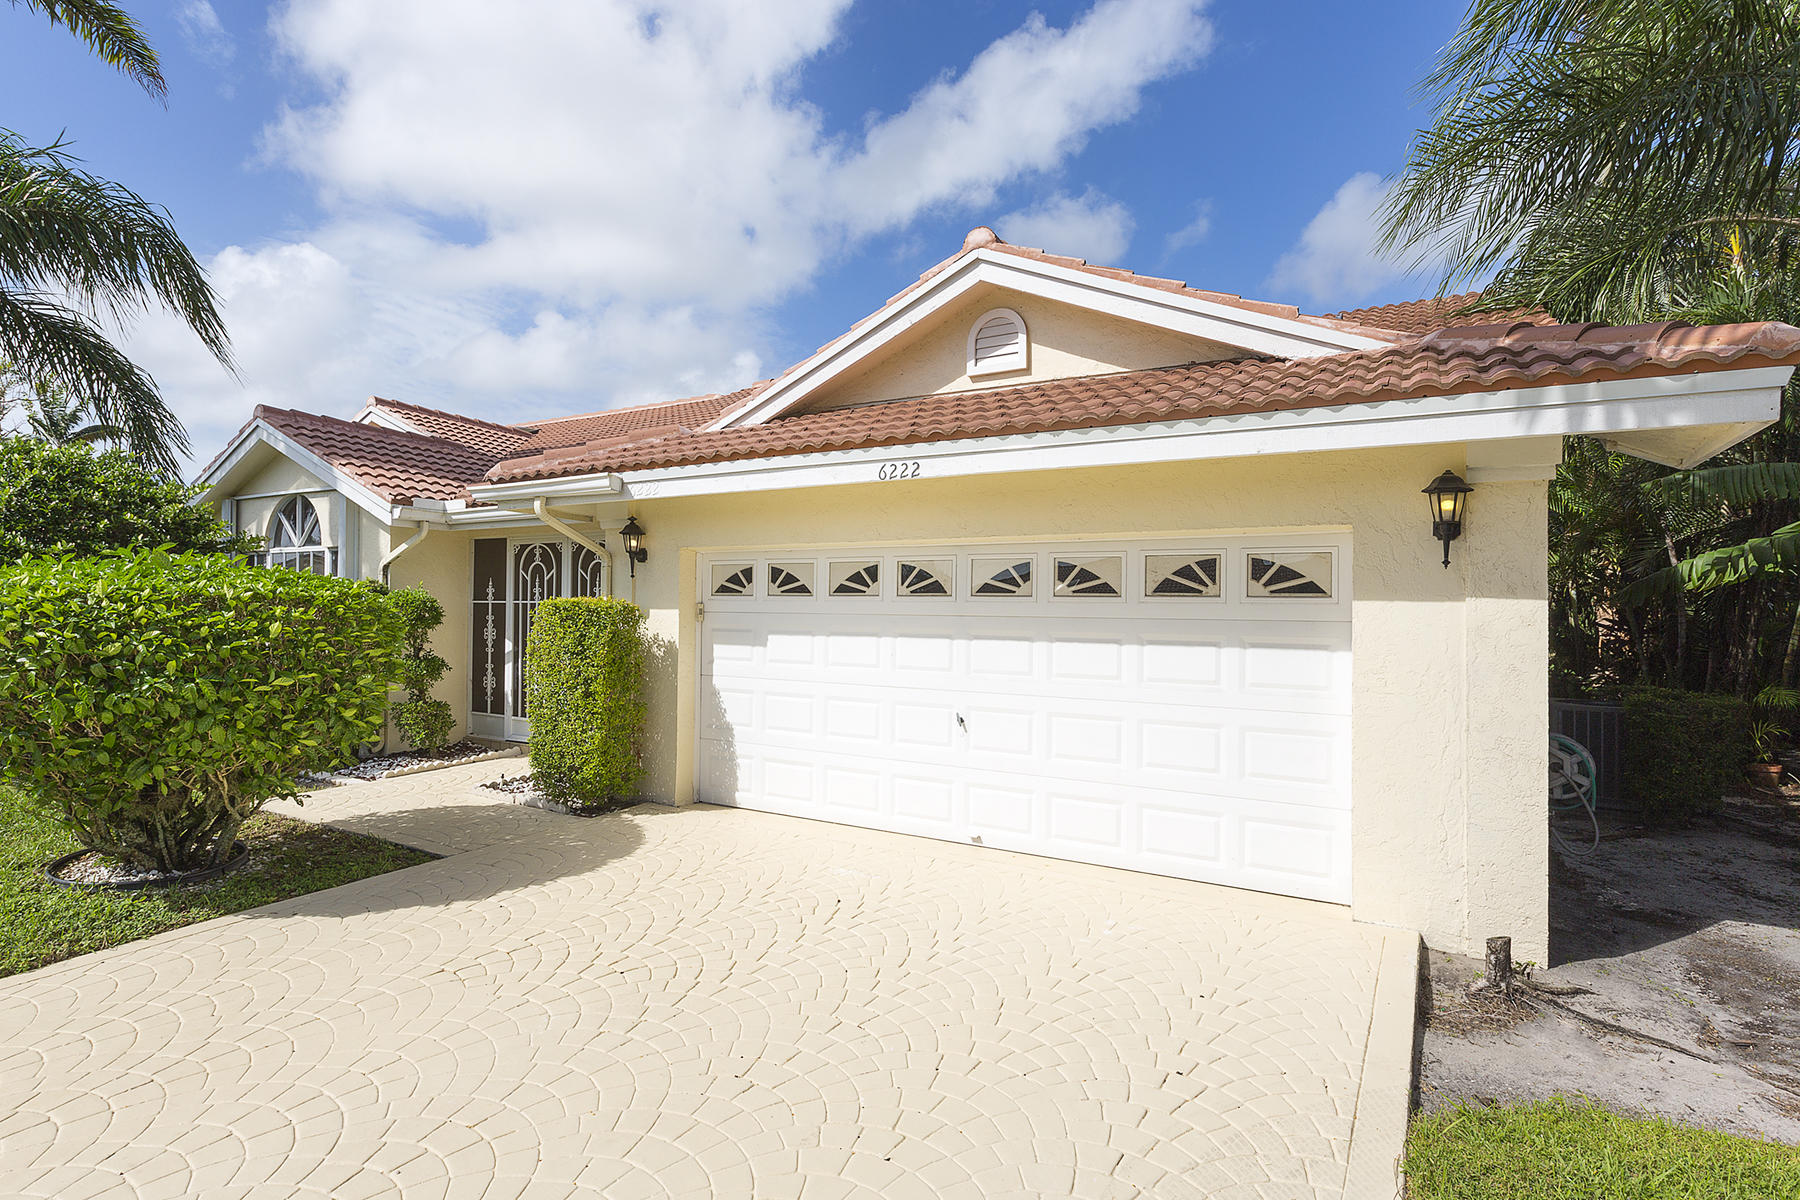 6222 Golf Villas Drive Boynton Beach, FL 33437